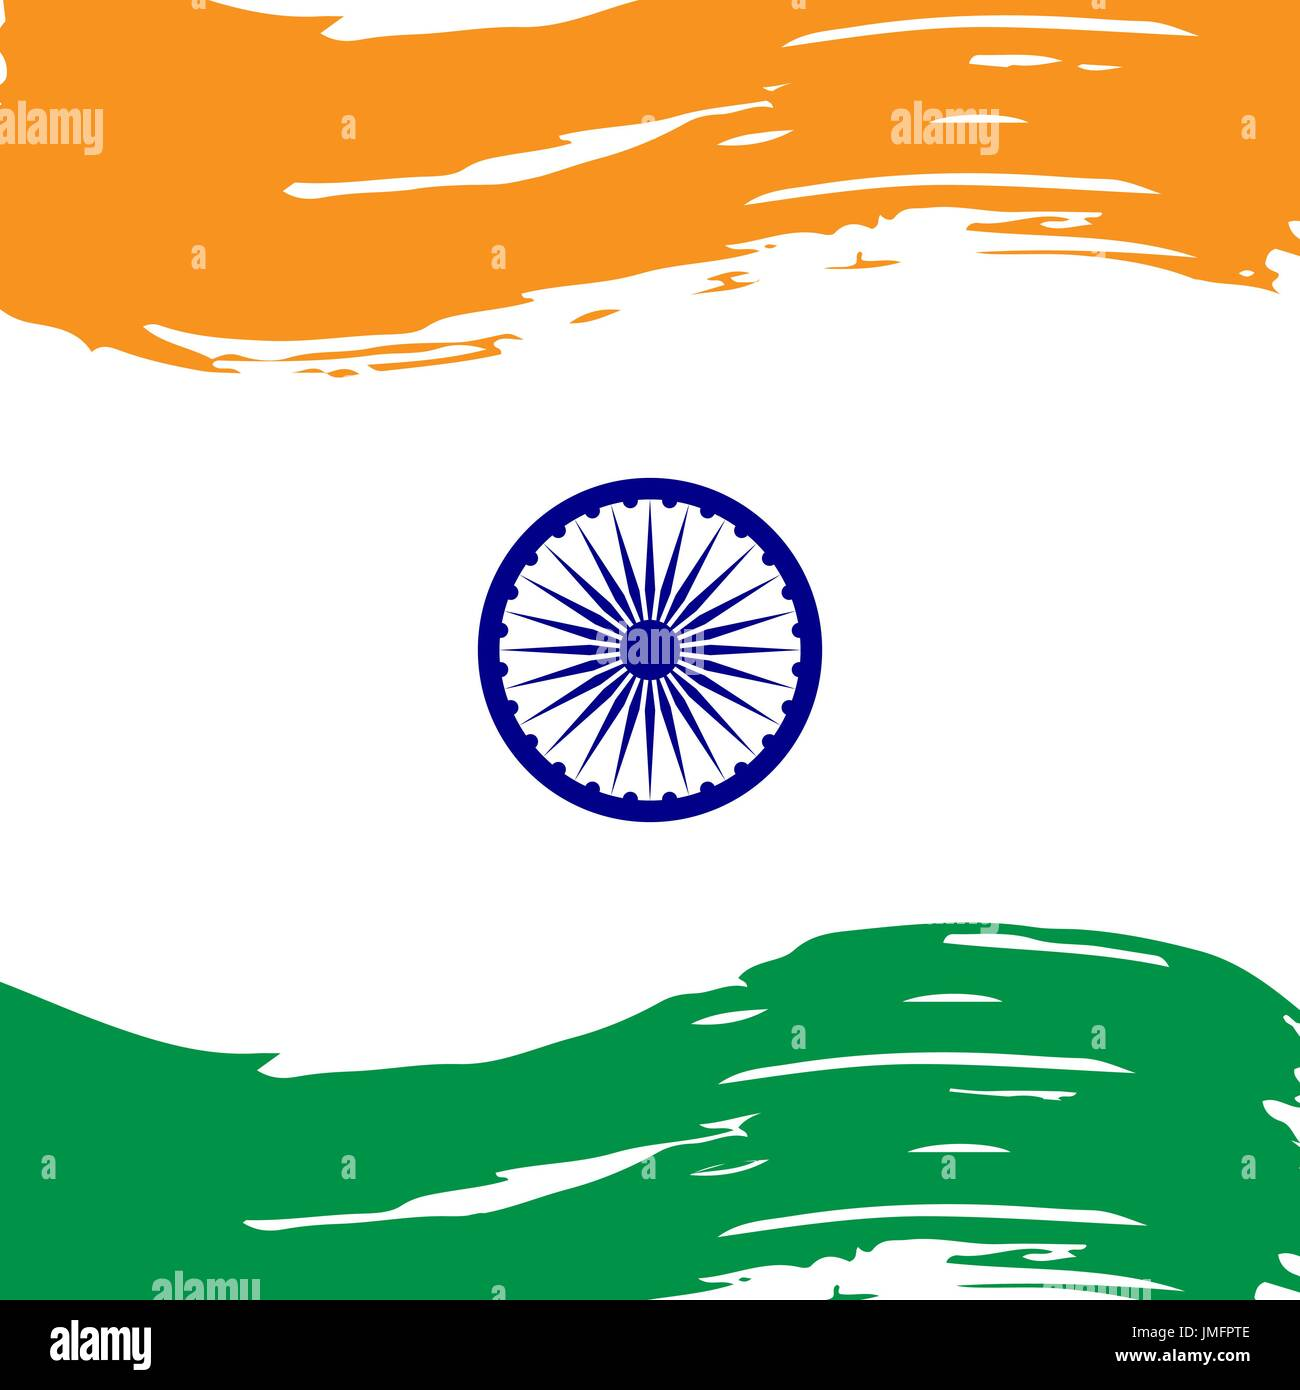 Indian Independence Day concept background - Stock Image